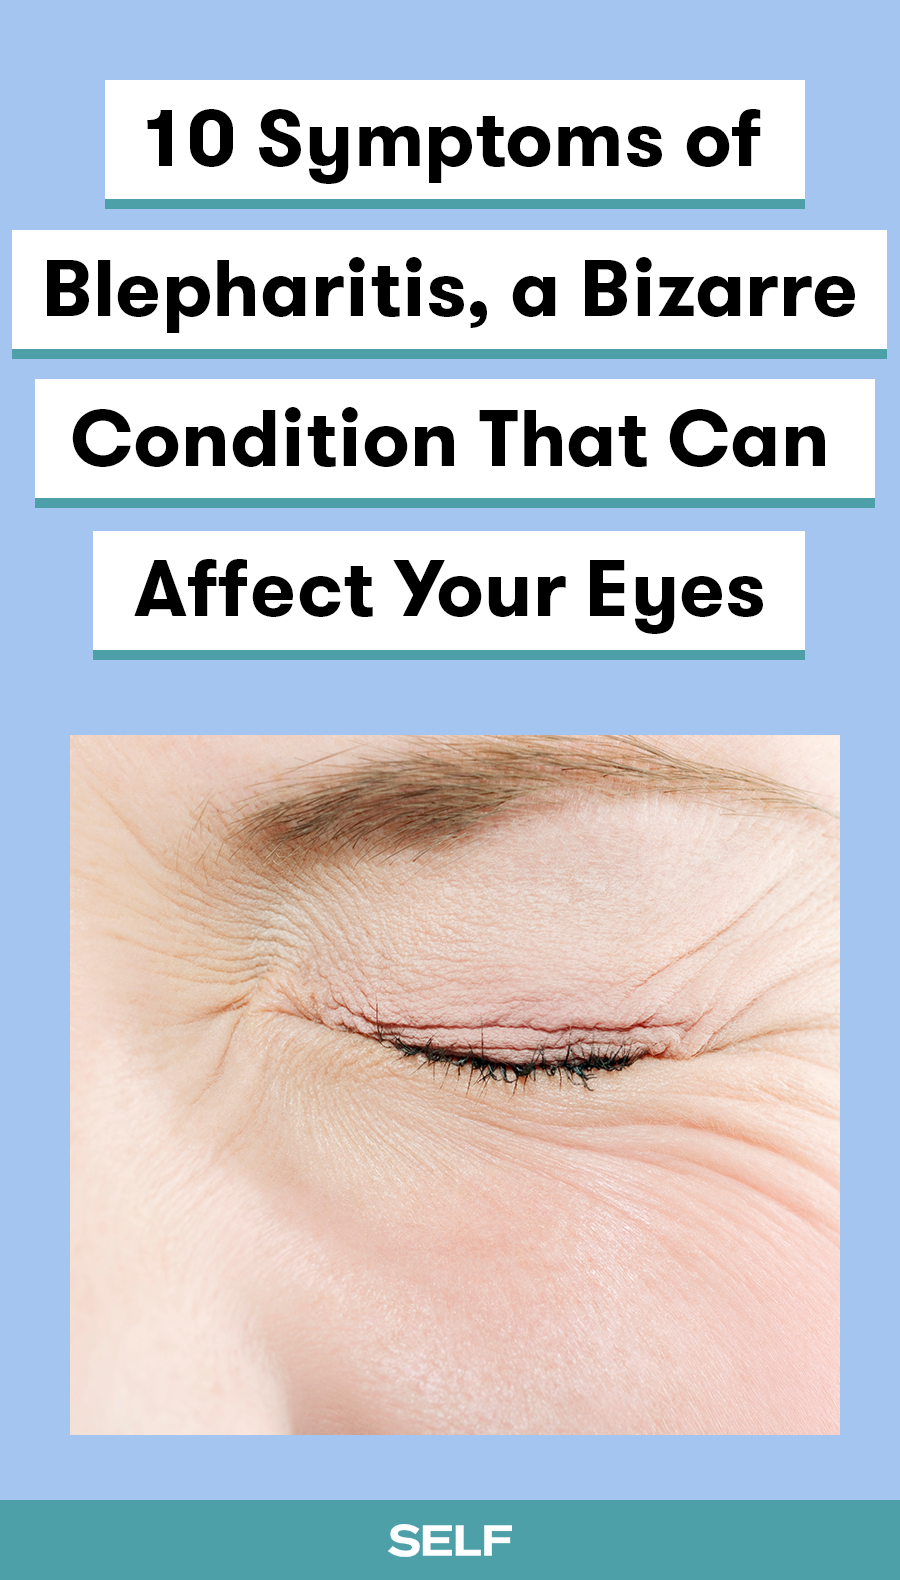 10 Symptoms Of Blepharitis A Bizarre Condition That Can Affect